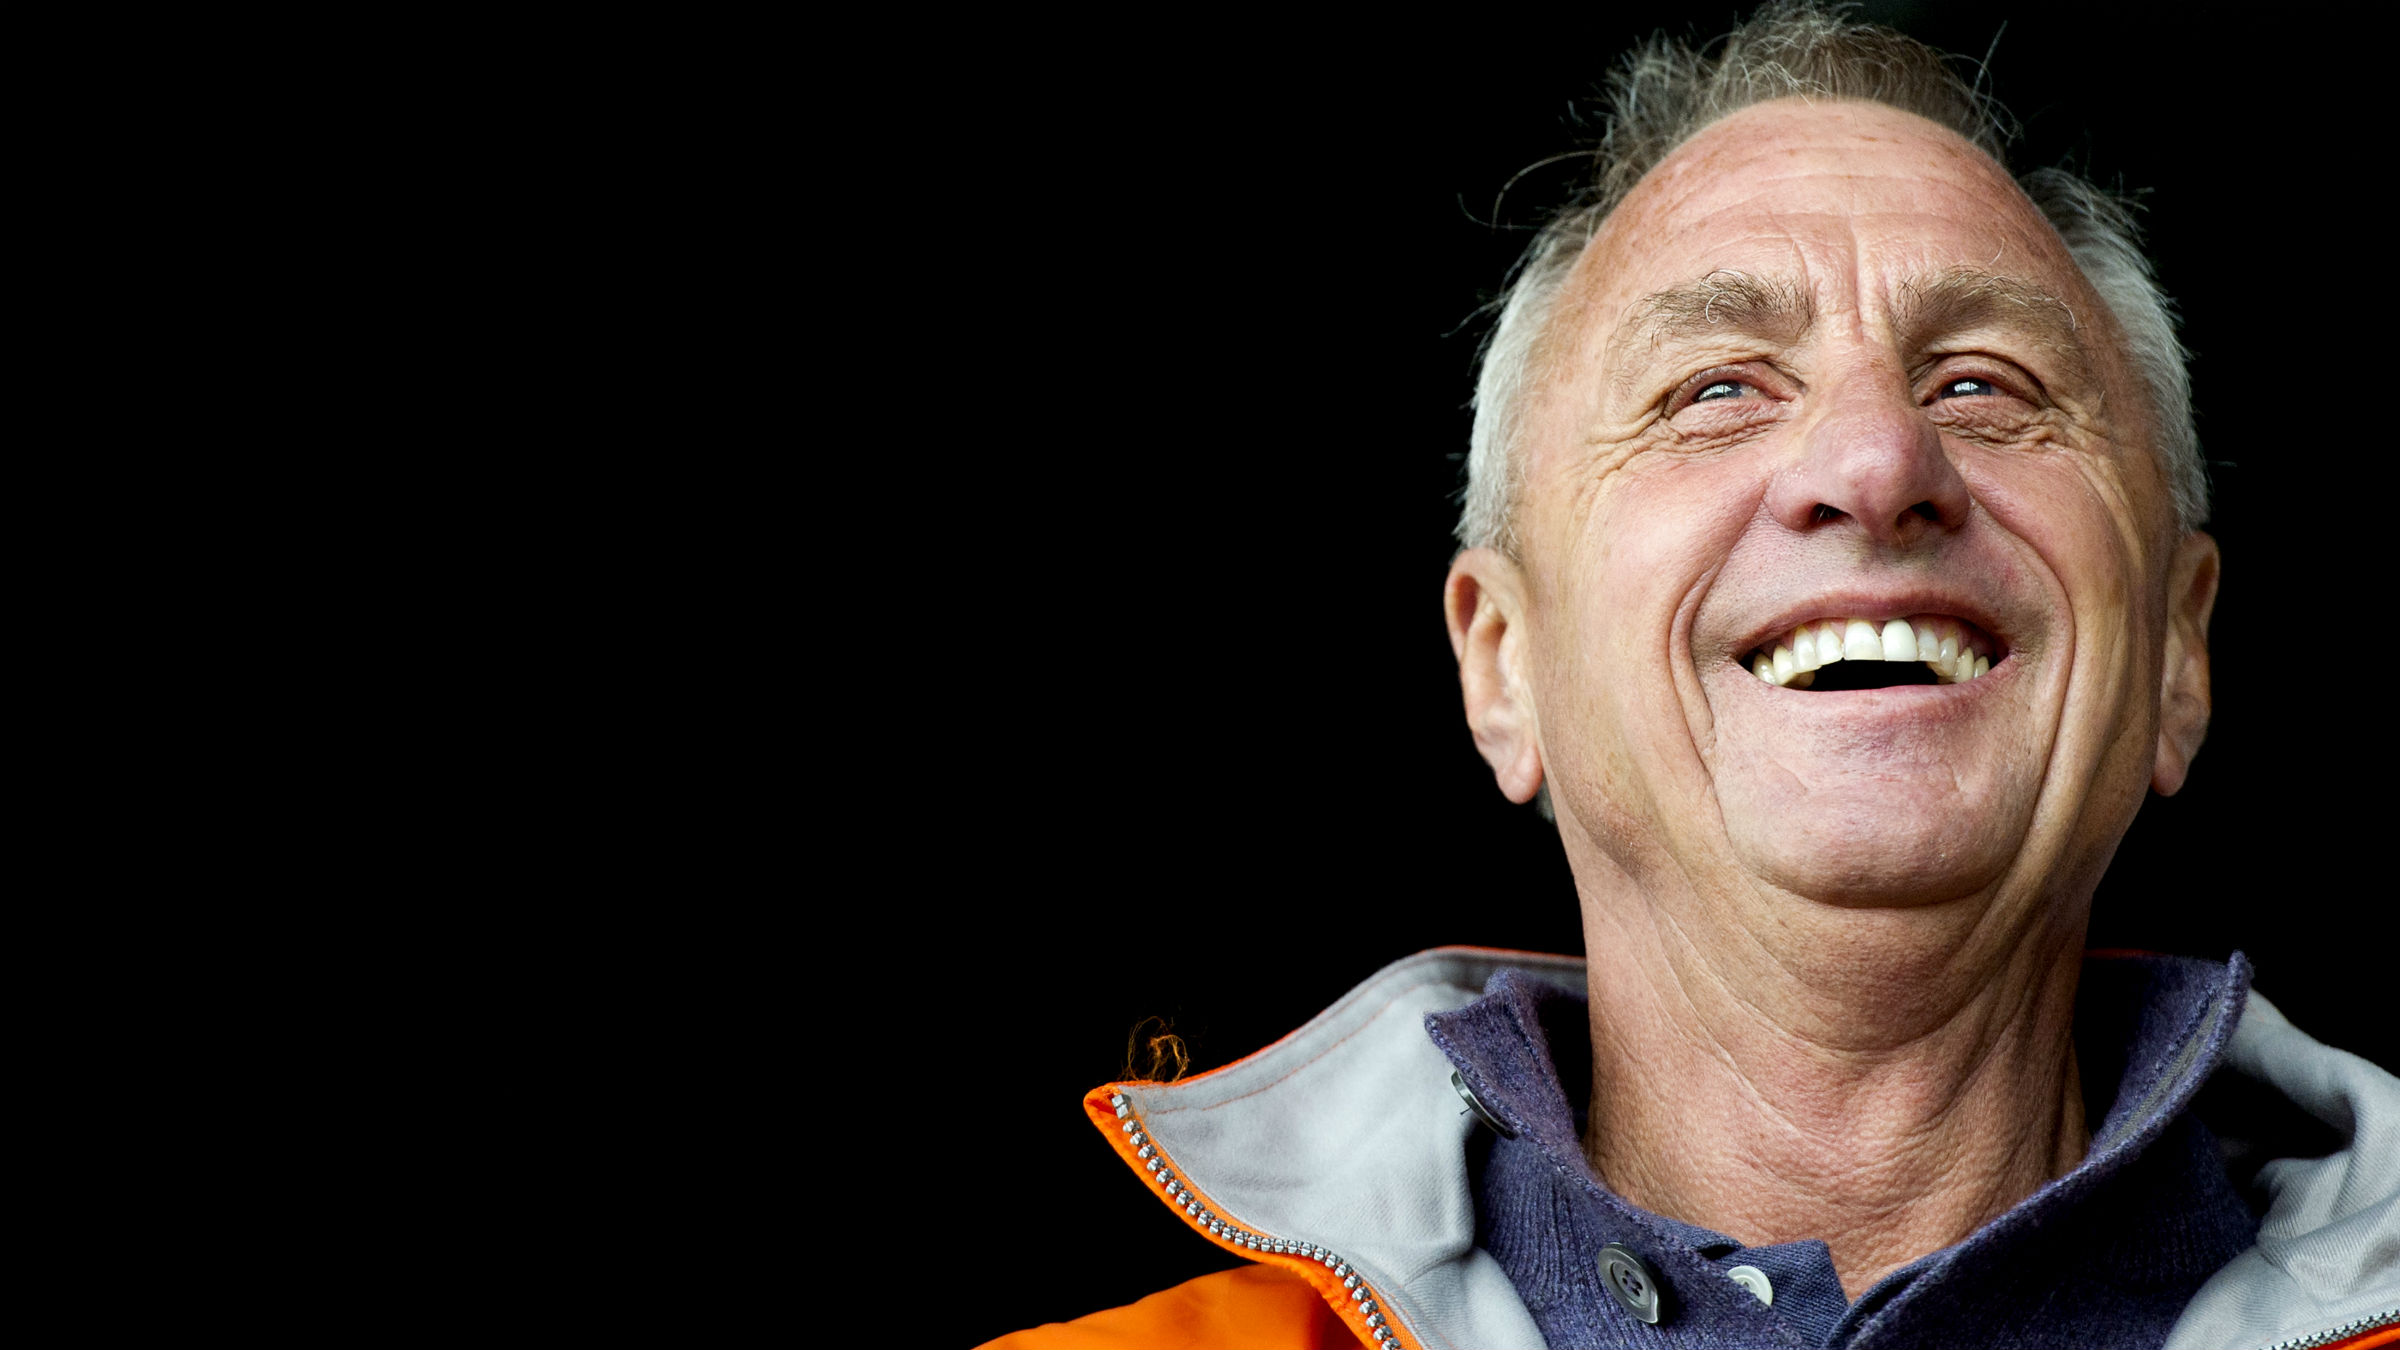 Cruijff thumb